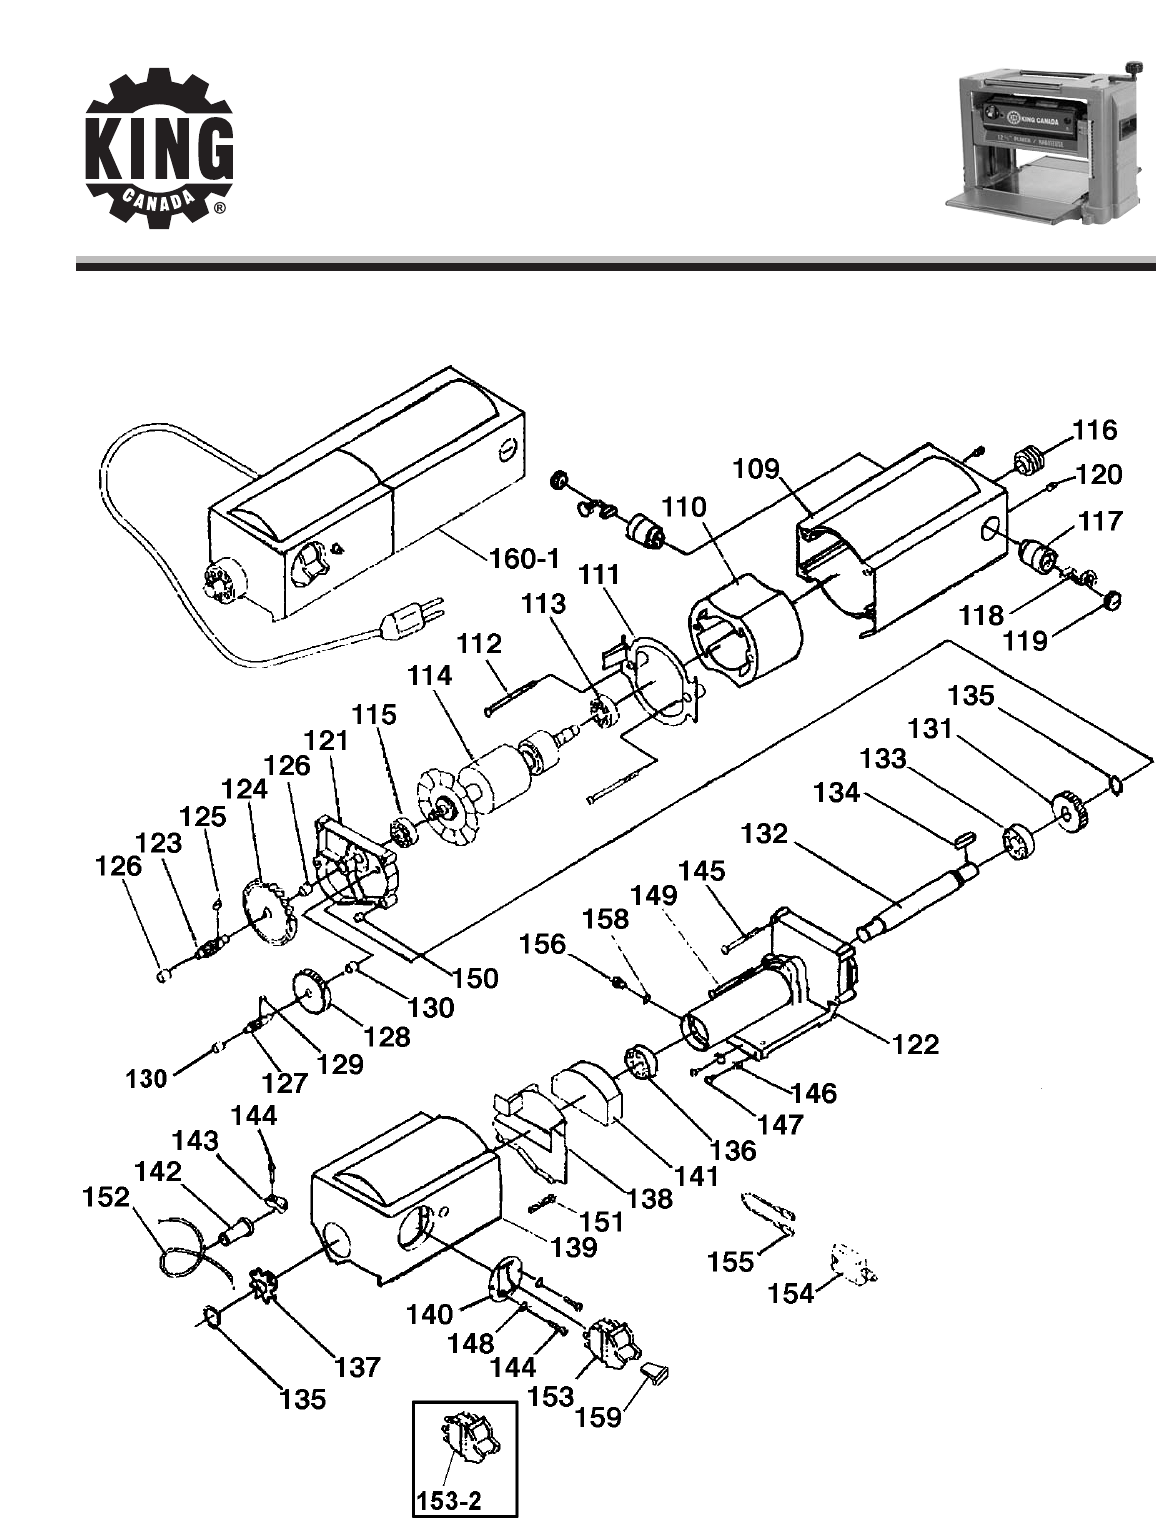 Page 3 of King Canada Planer KC-425C User Guide